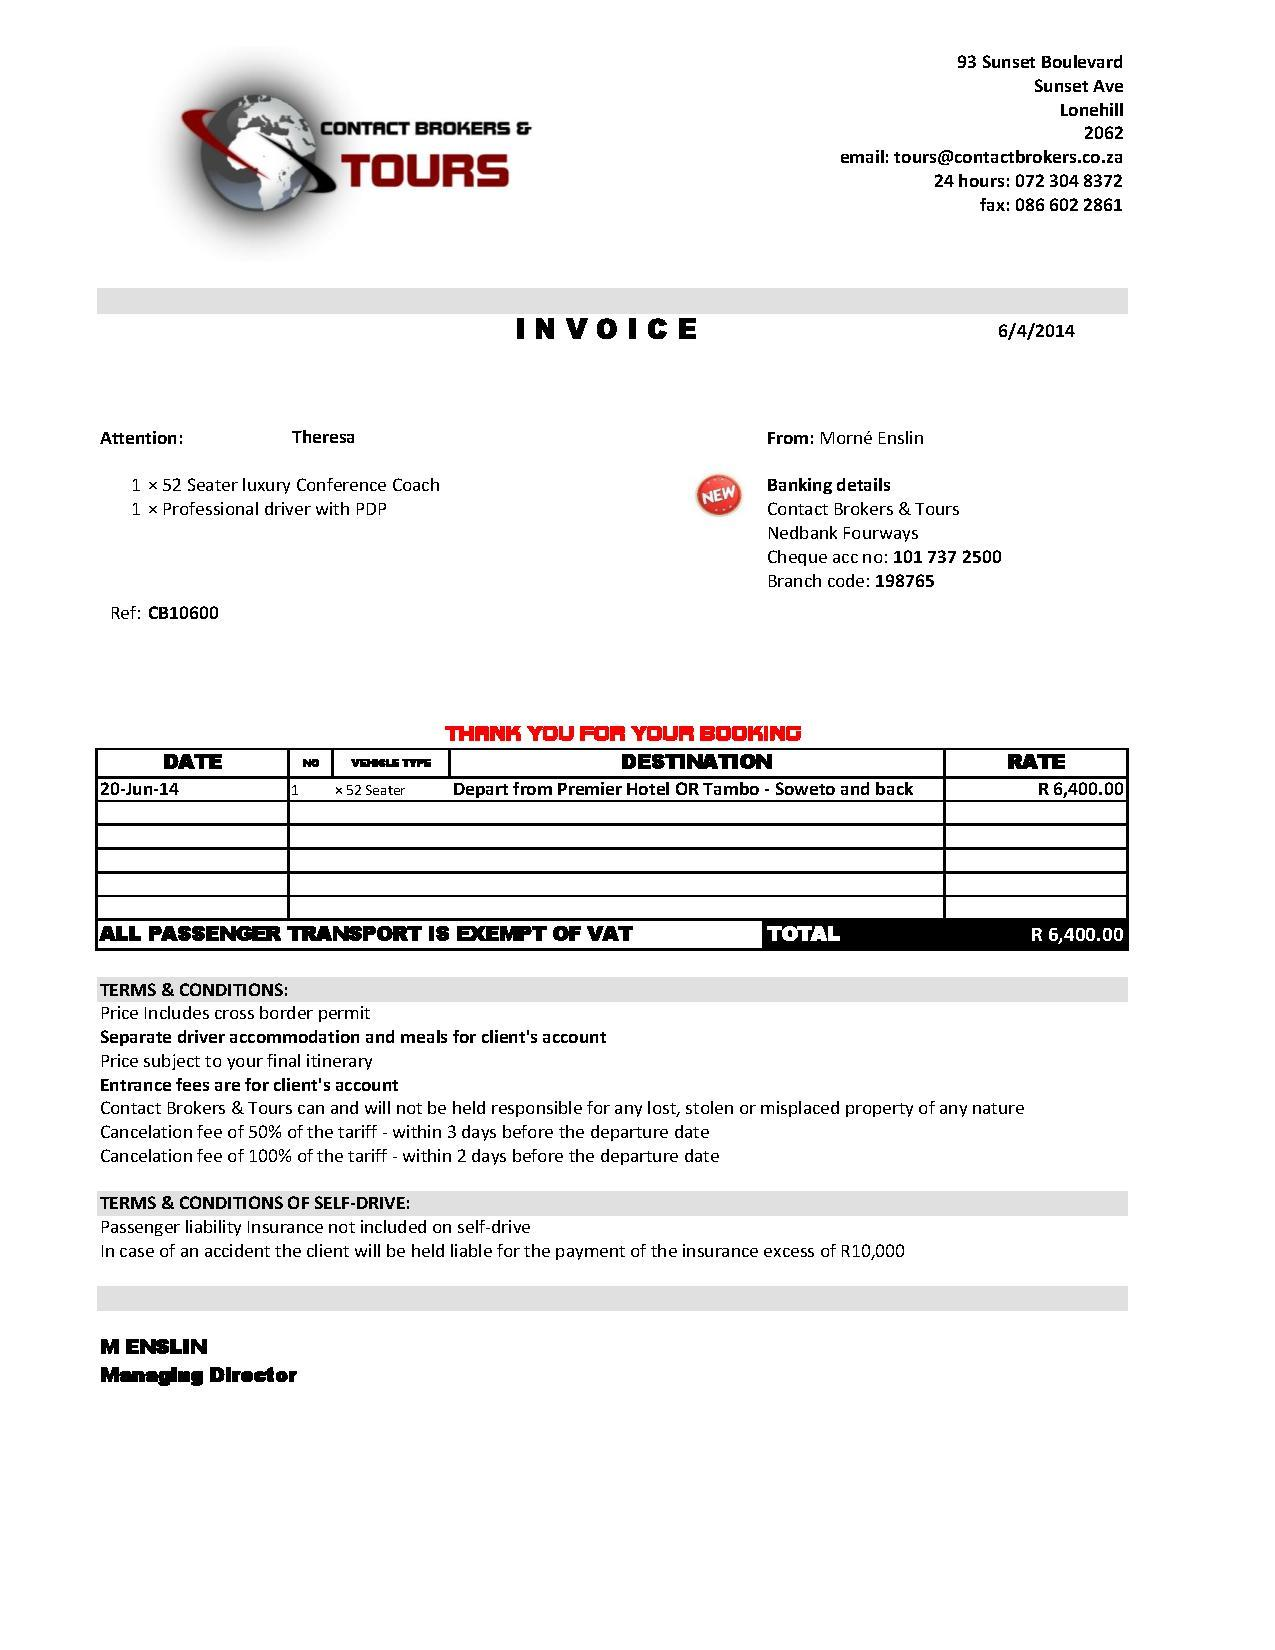 Fileinvoice bus transport quotation for wikiindaba 2014pdf fileinvoice bus transport quotation for wikiindaba 2014pdf spiritdancerdesigns Choice Image